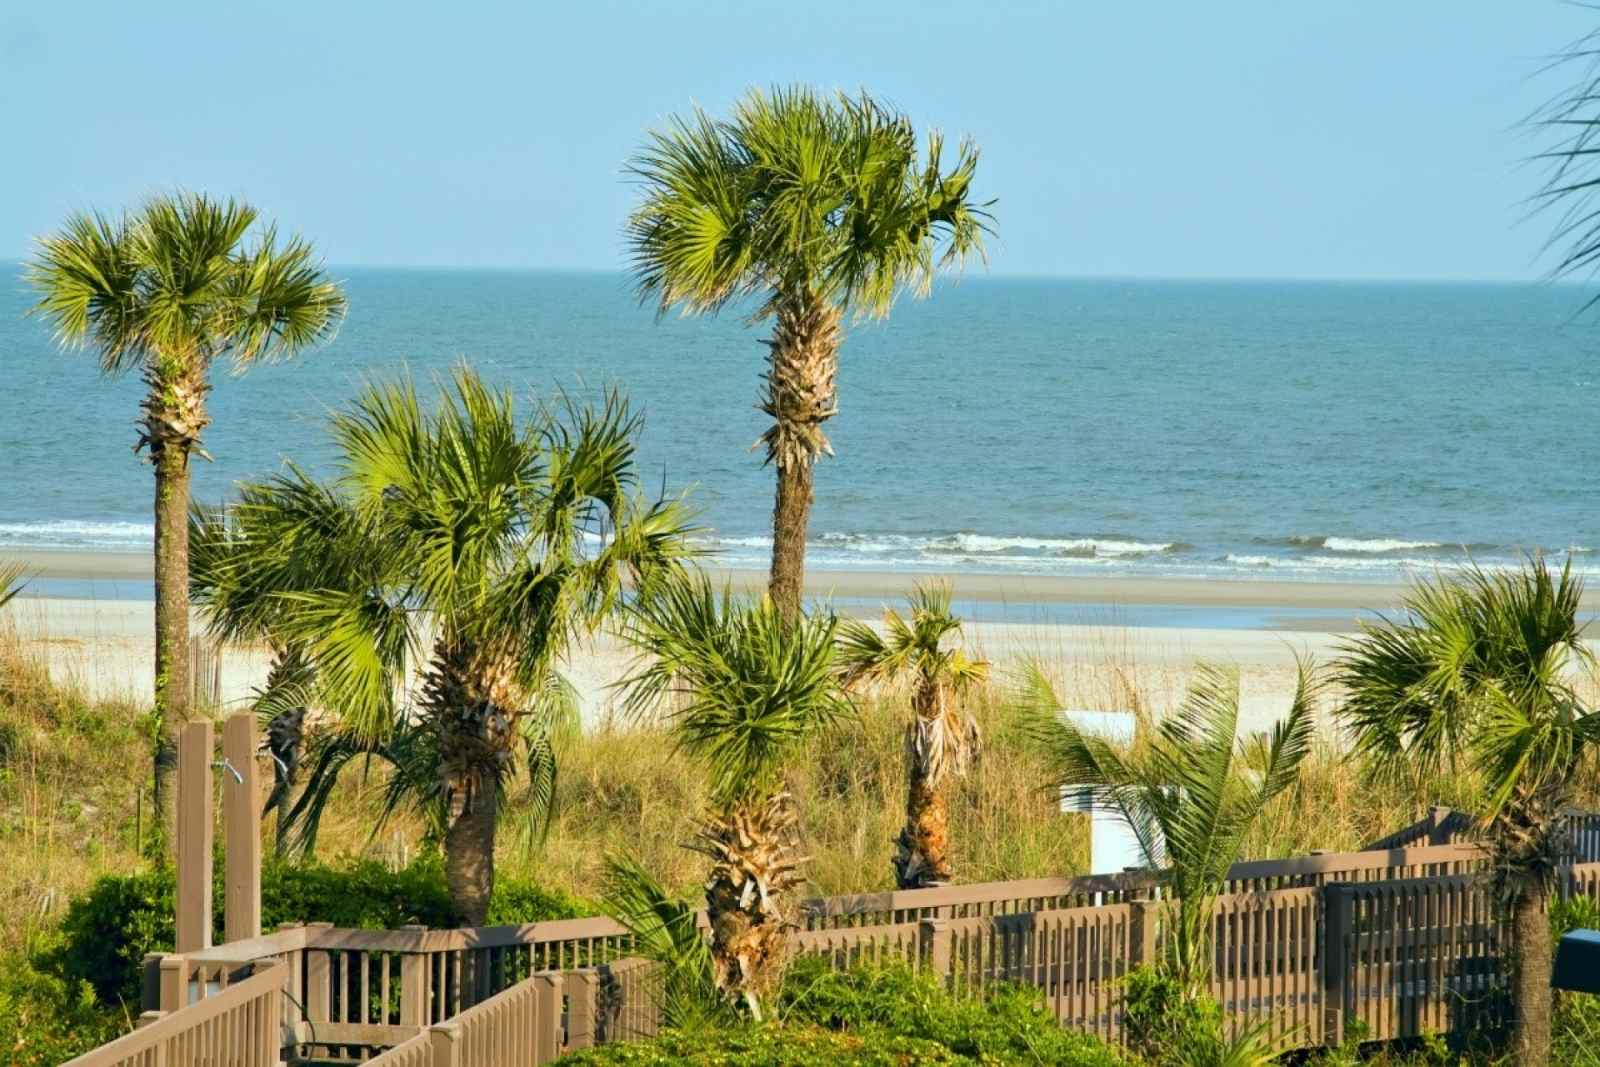 Hilton Head Island Vacation Al South For Winter Mins To Beach Coligny Plaza Private Patio Grill Club